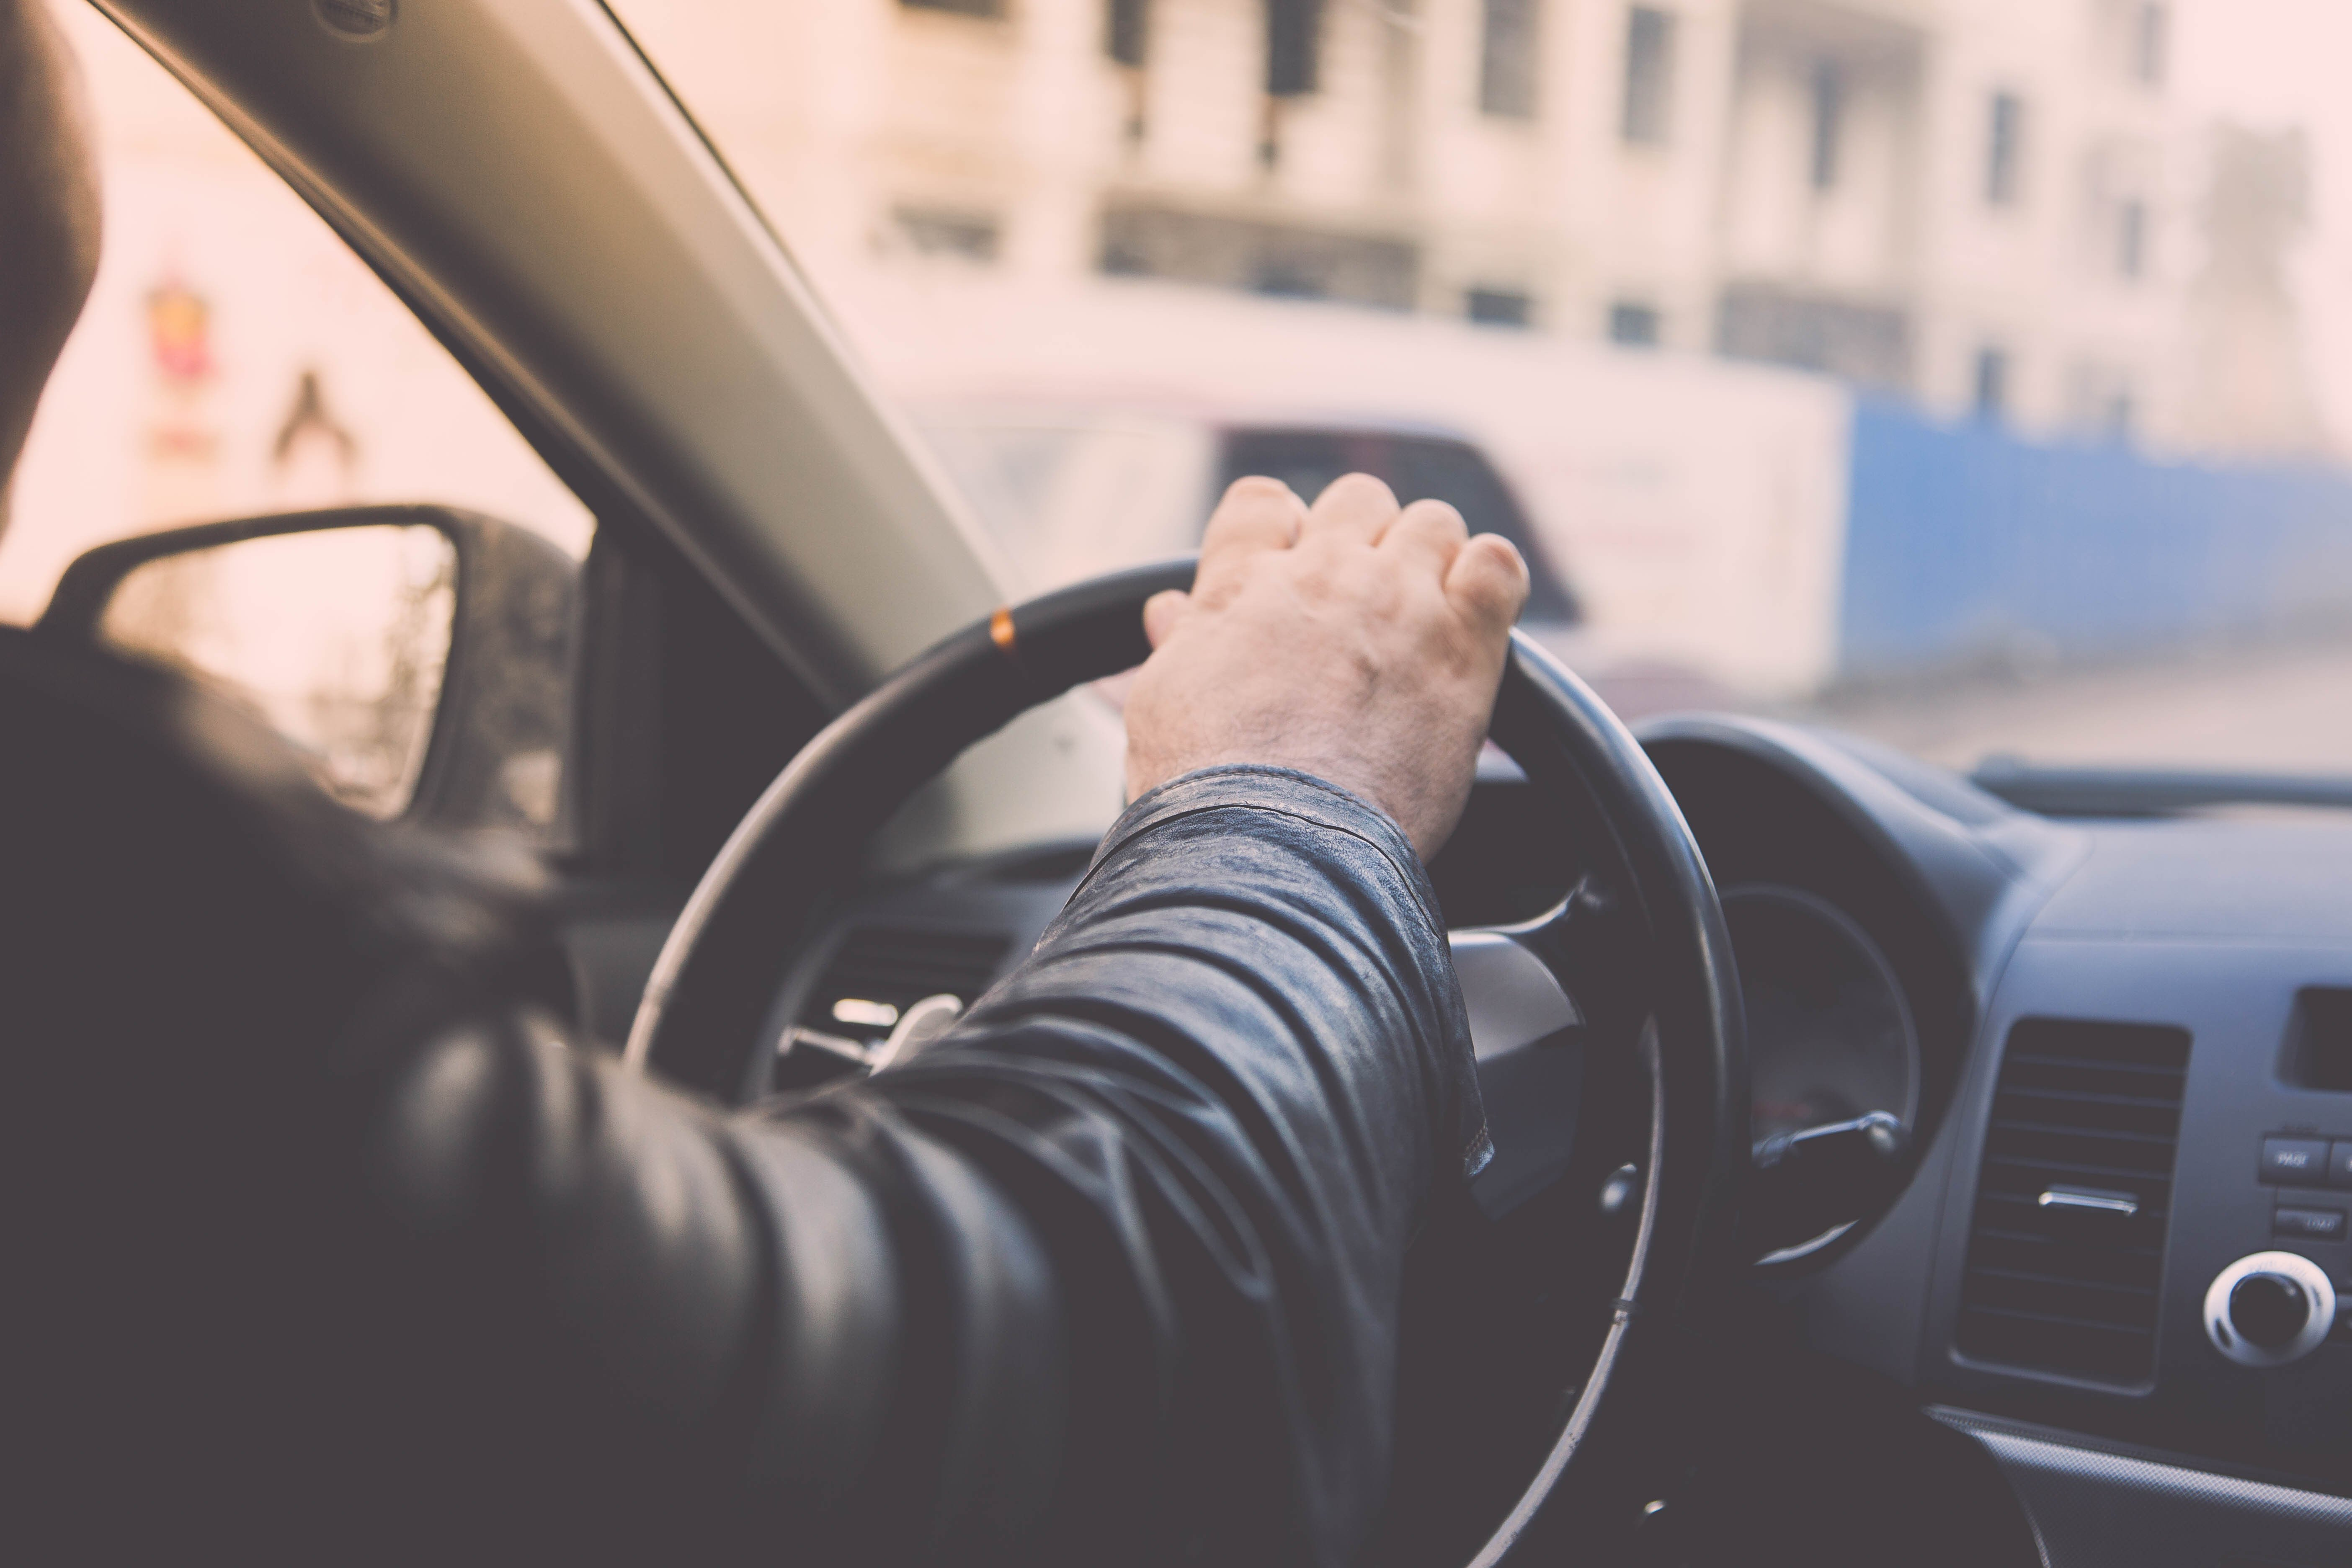 Man driving car, hand on steering wheel, looking at the road | Photo: Shutterstock.com